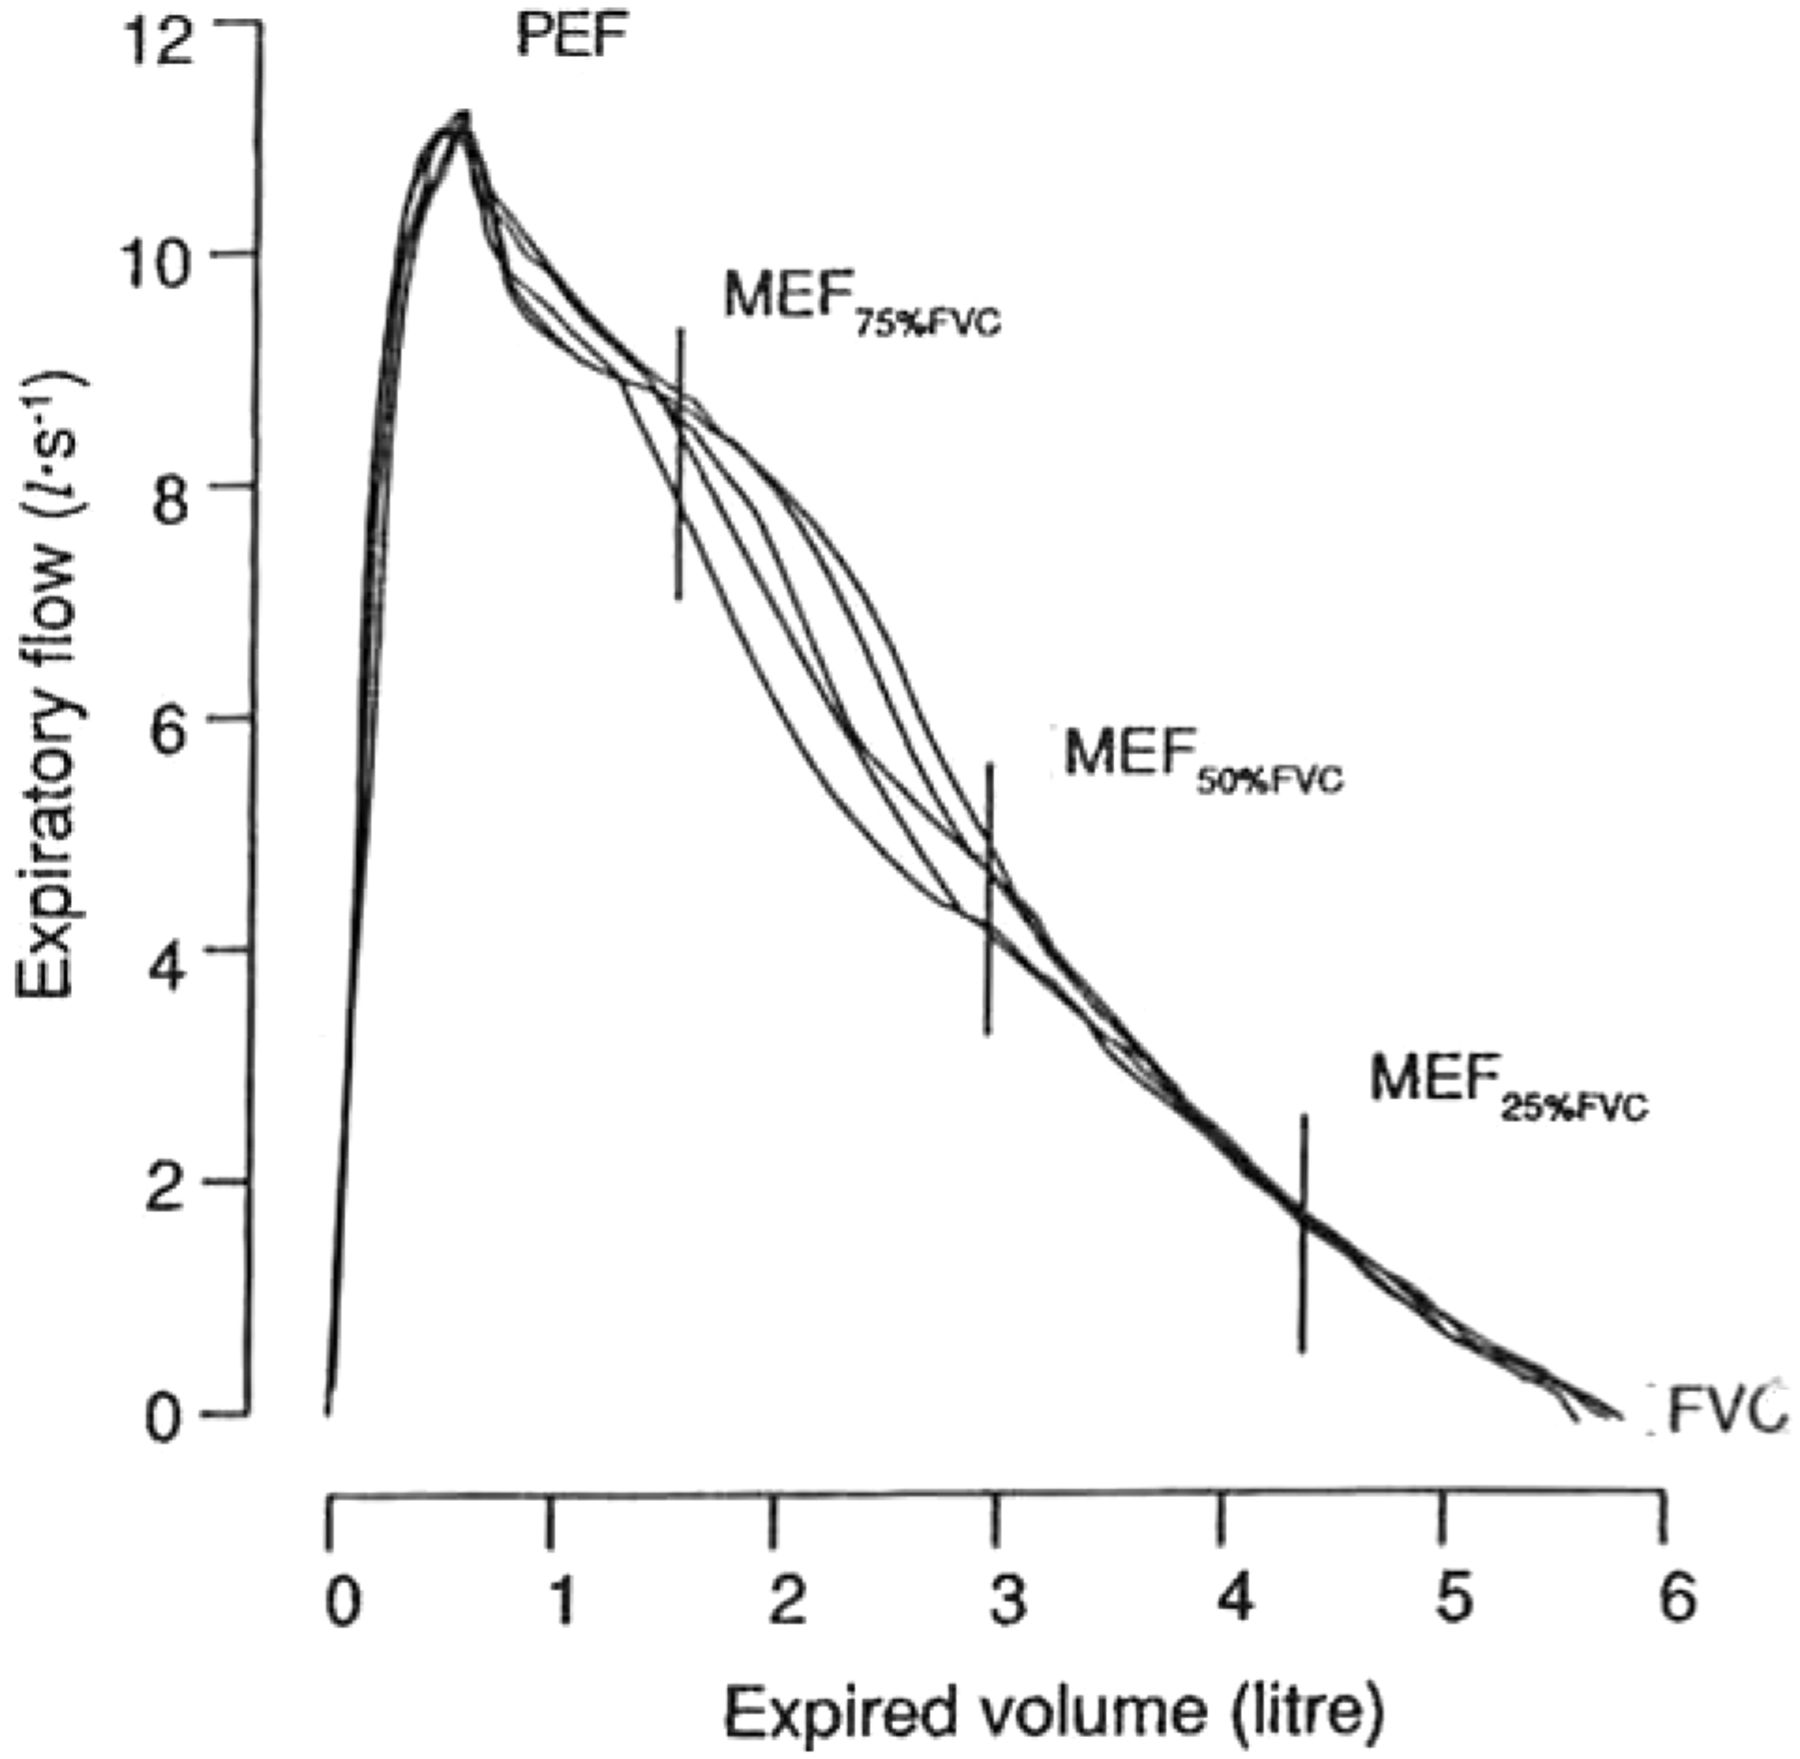 Lung volumes and forced ventilatory flows european respiratory society download figure ccuart Choice Image